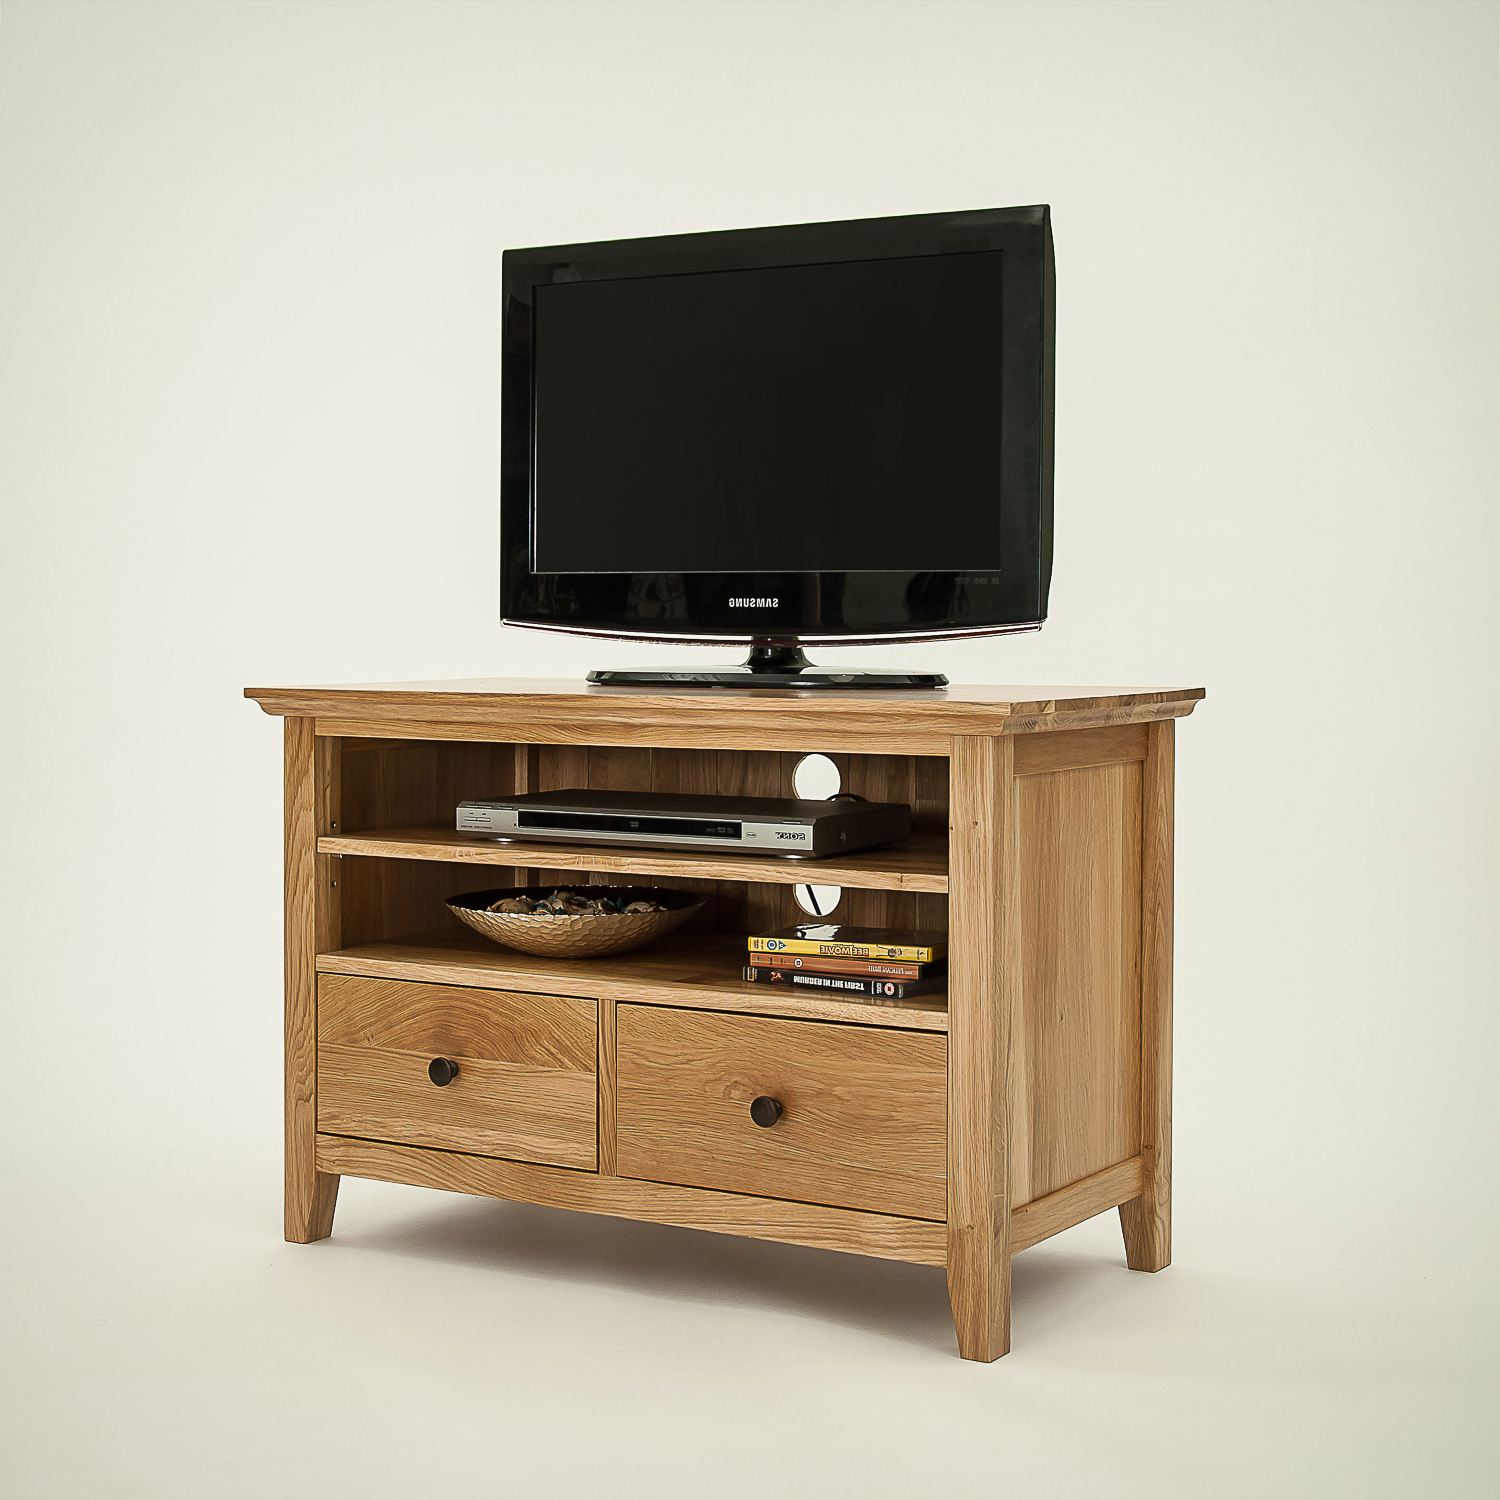 Small Oak Tv Cabinets Intended For Trendy Hereford Rustic Oak Small Tv Unit – Cw Furniture (View 11 of 20)